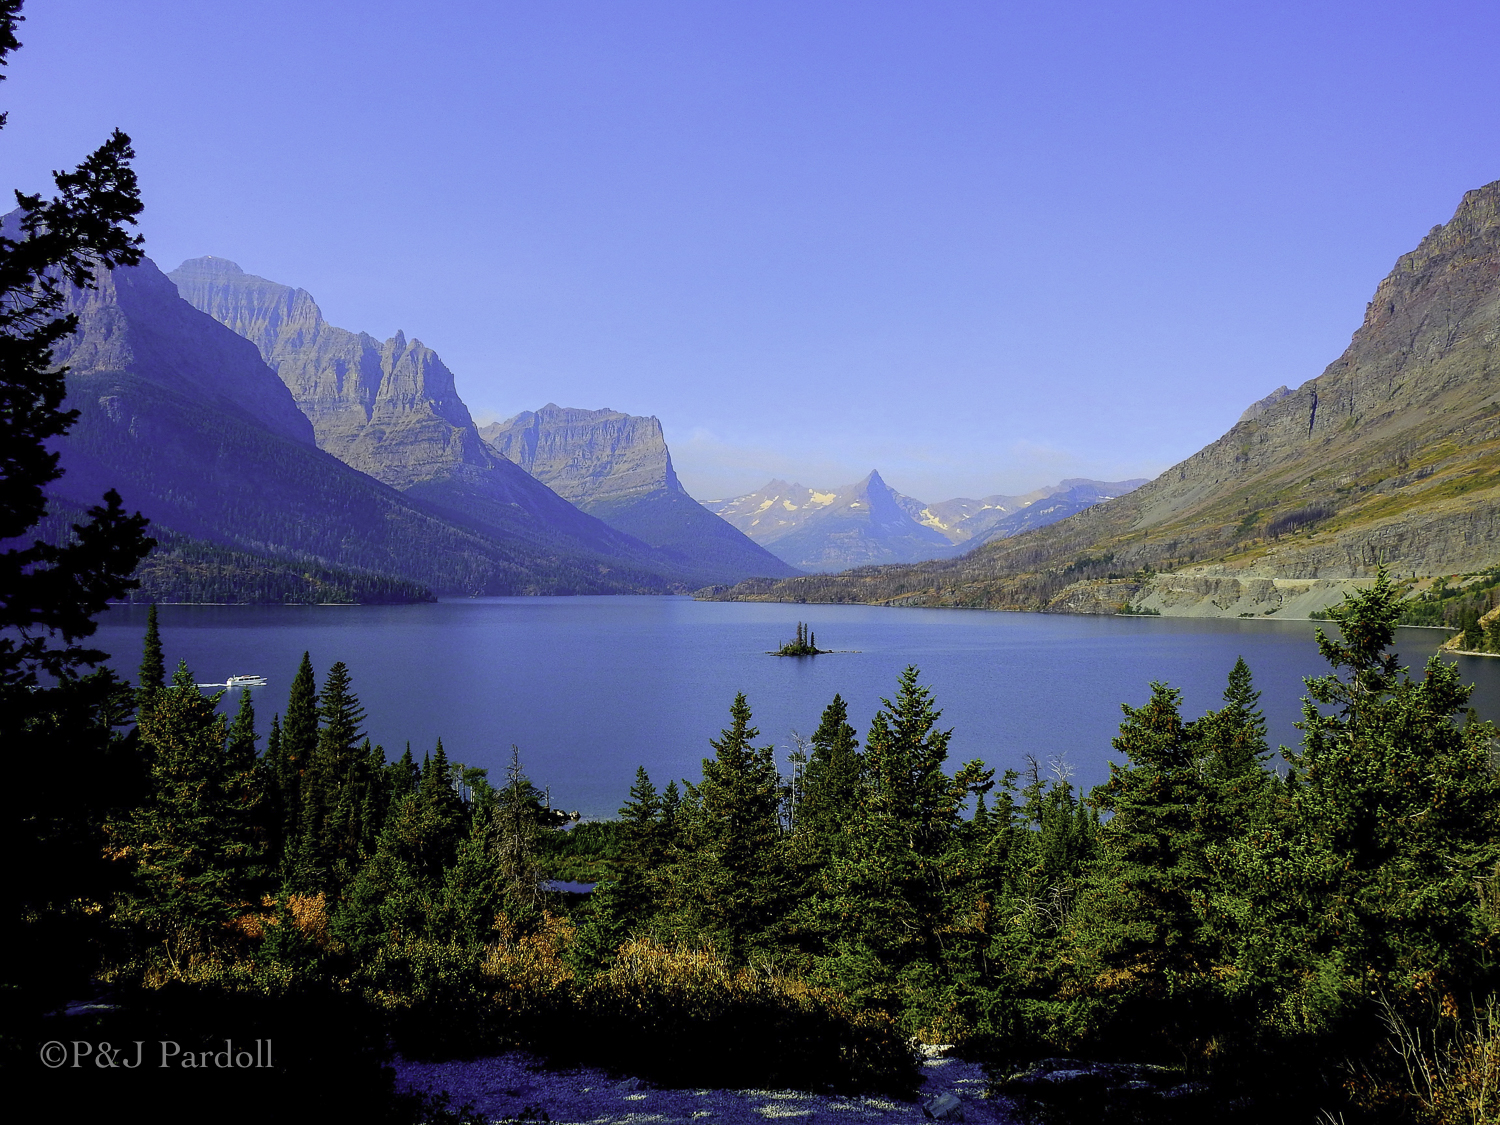 Wild Goose Island in St. Mary's Lake, Glacier National Park